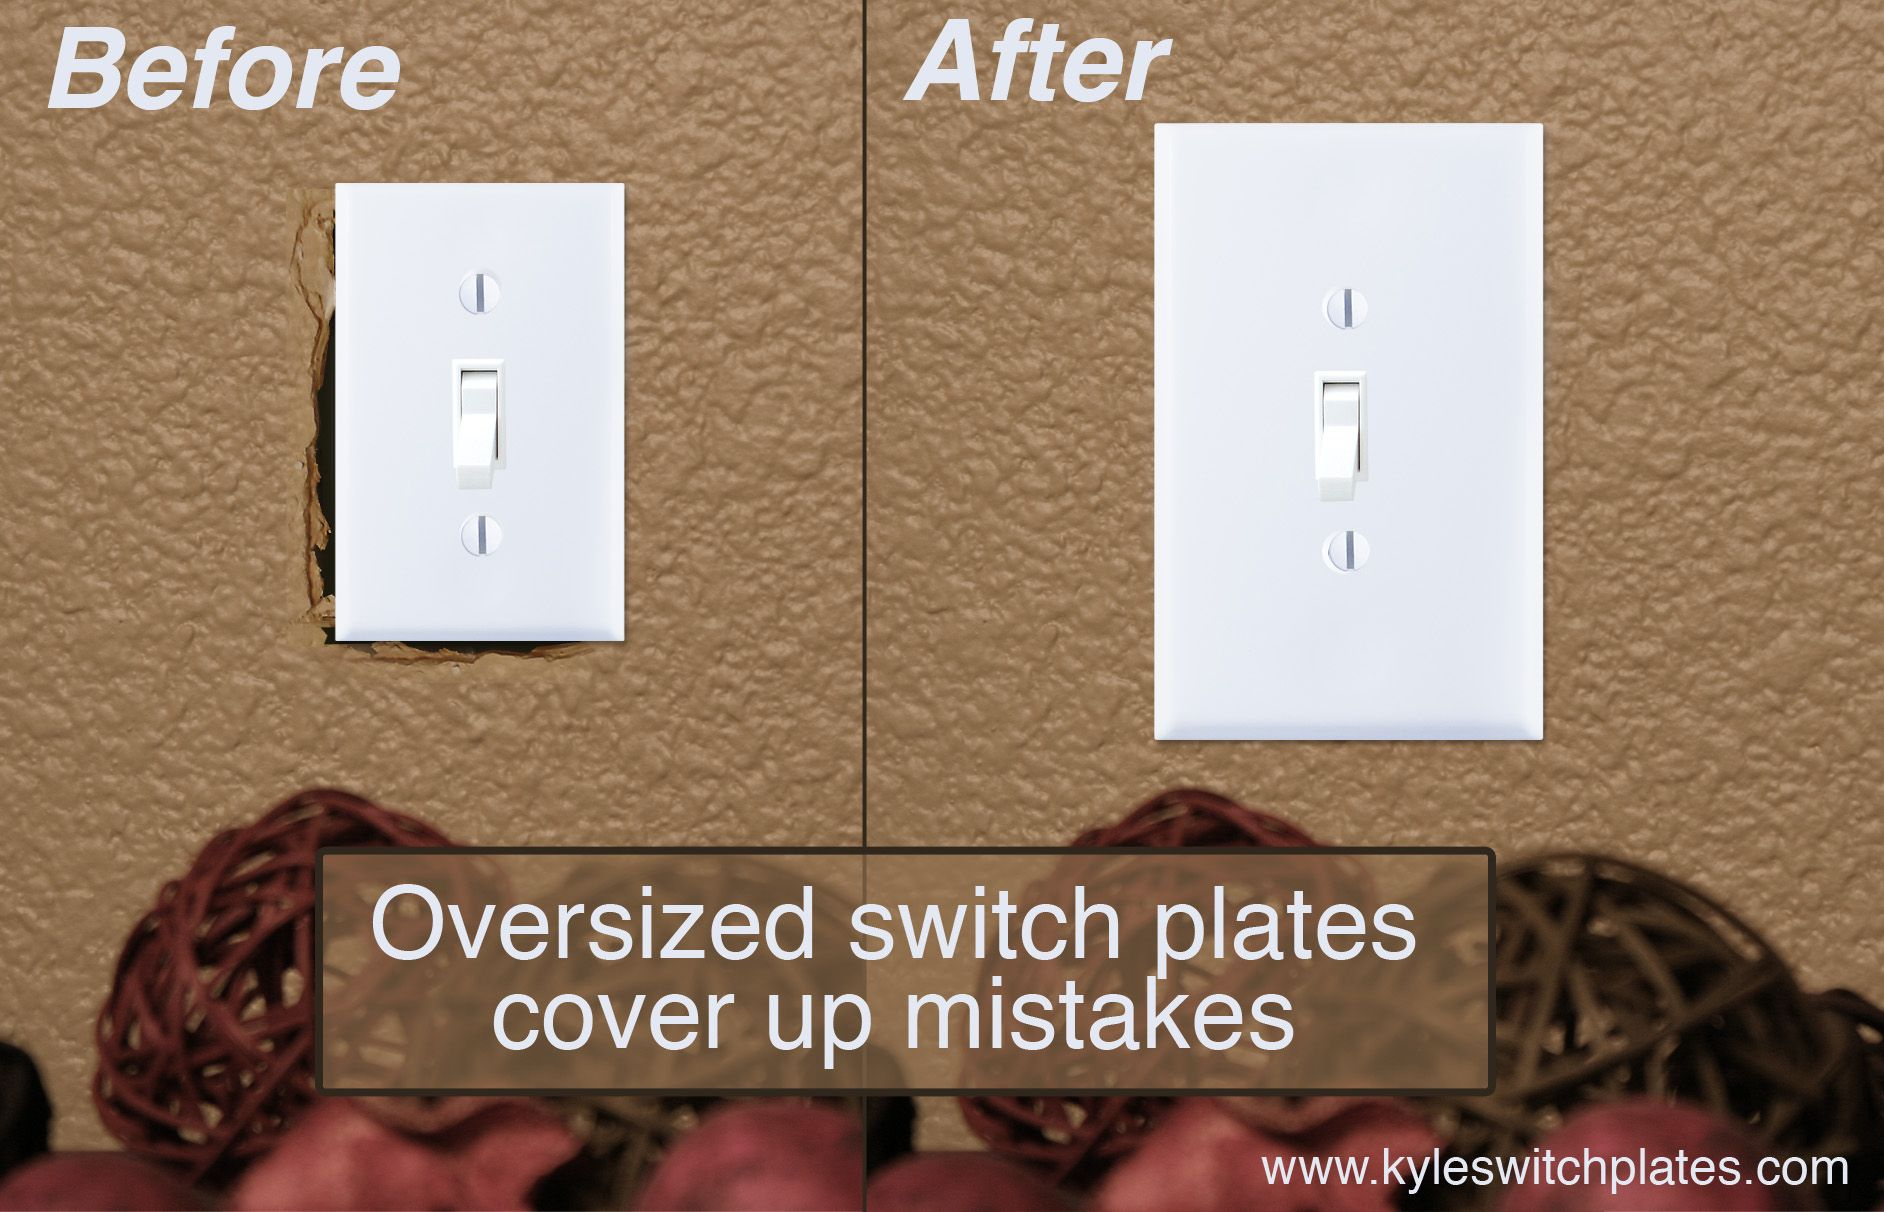 Fix Mistakes With Large Oversized Light Switch Covers From